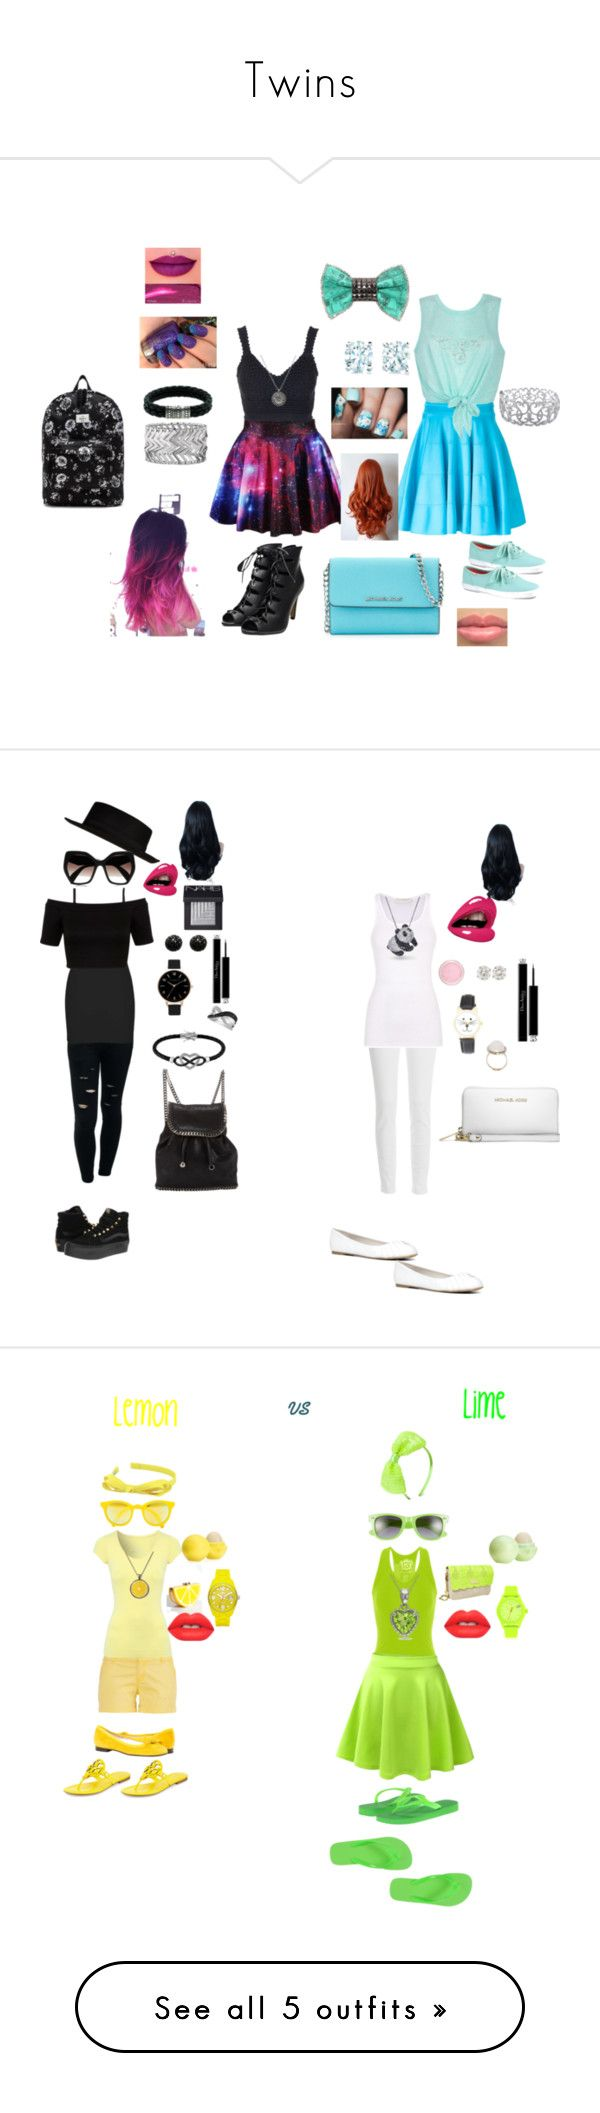 """""""Twins"""" by livvy210 ❤ liked on Polyvore featuring Topshop, Versace, Ally Fashion, Keds, Bijoux de Famille, Ice, John Hardy, Tiffany & Co., Express and OBEY Clothing"""